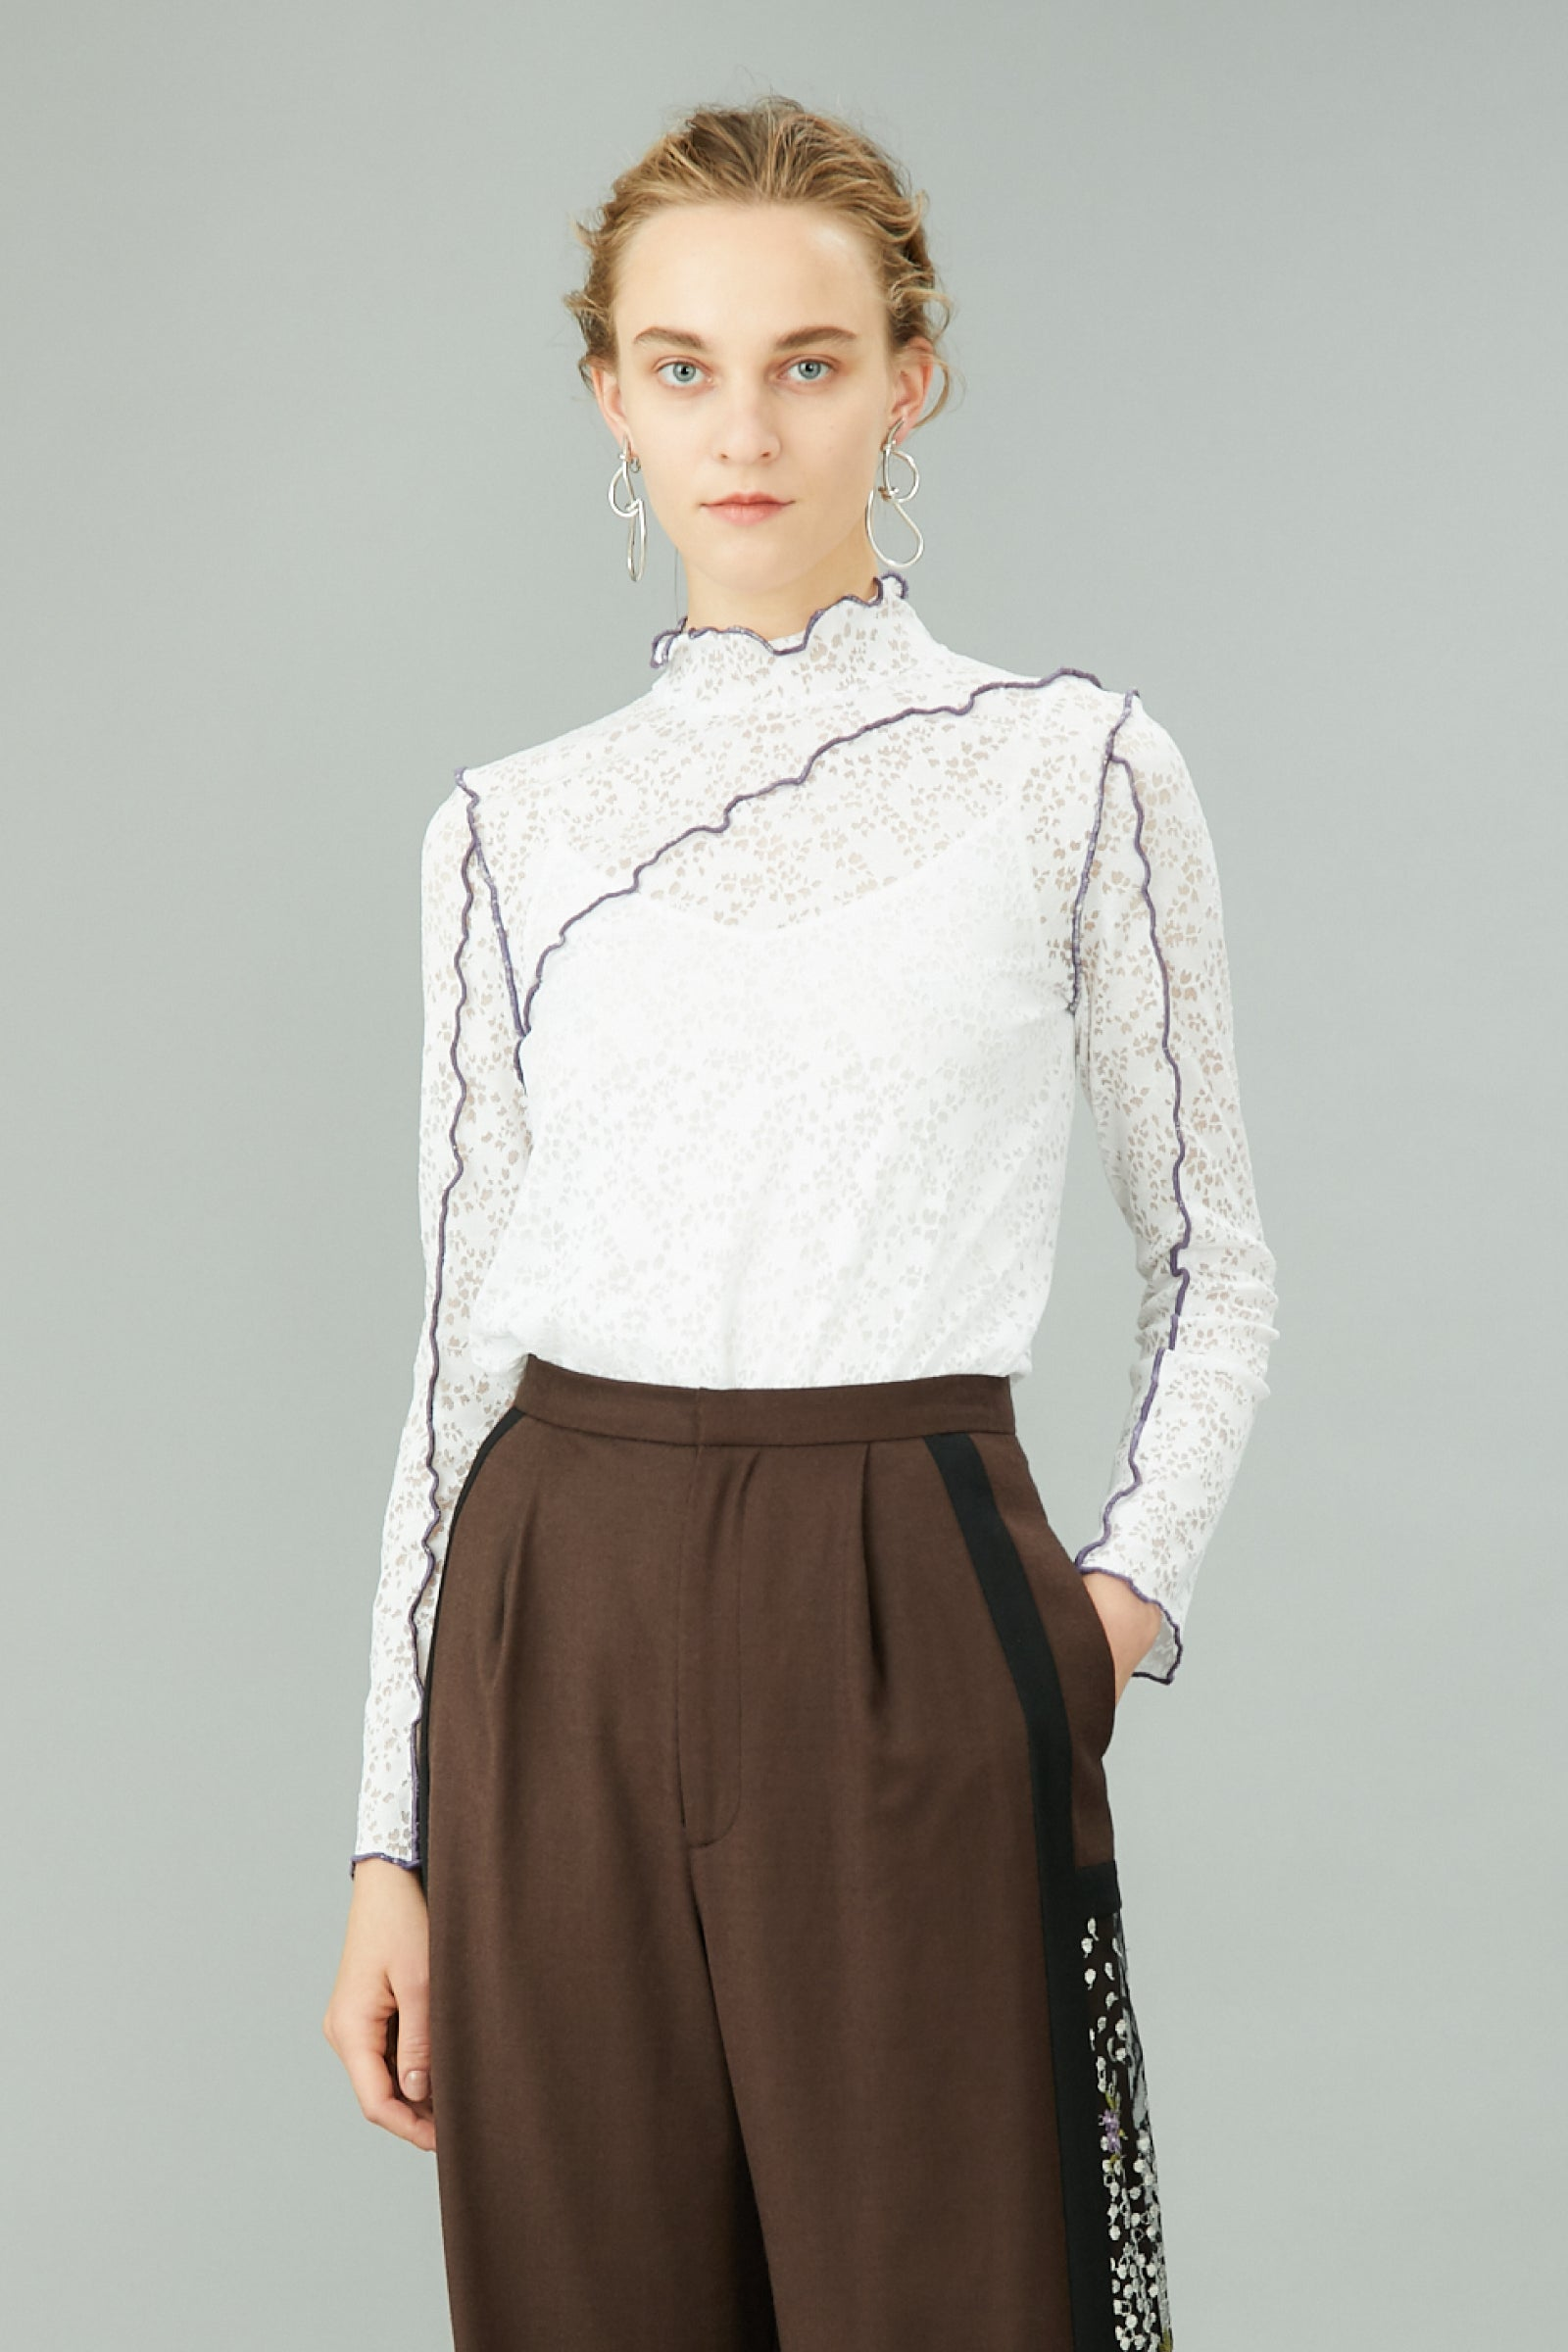 MURRAL stretch lace top (white)